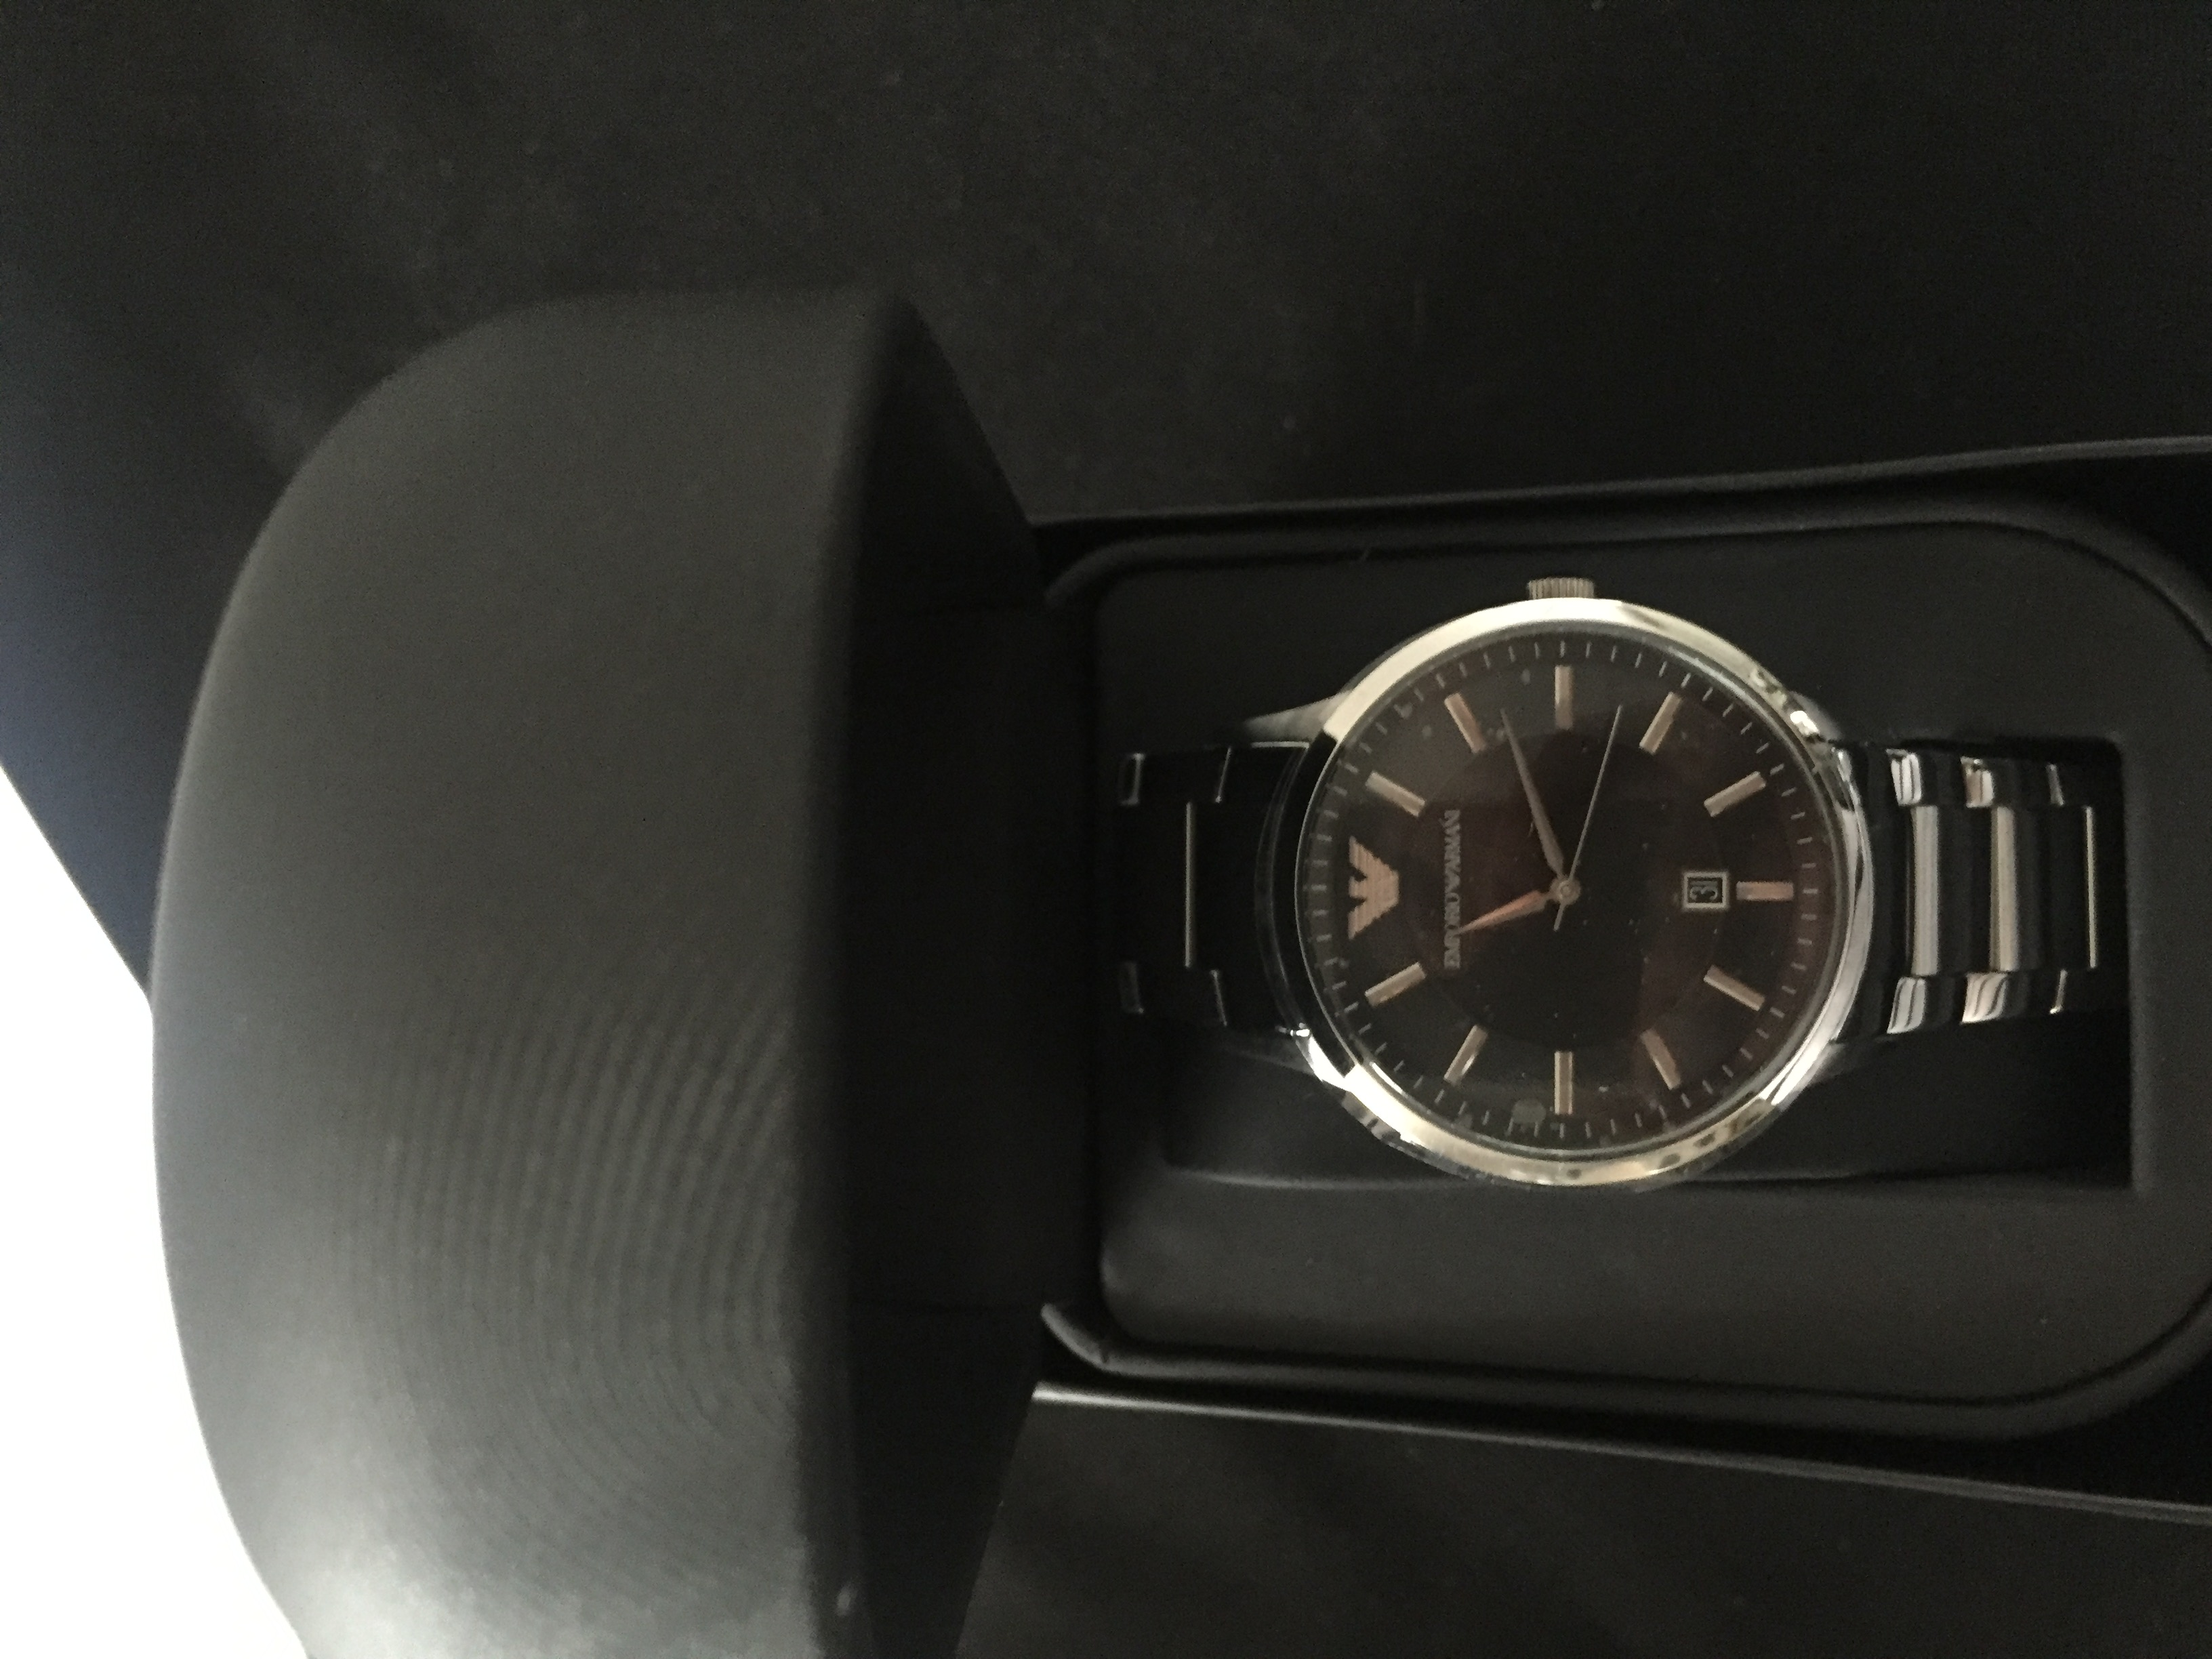 d1508c129be my purchase of my Armani watch was amazing it came the next day and i  brought it for my partners birthday present